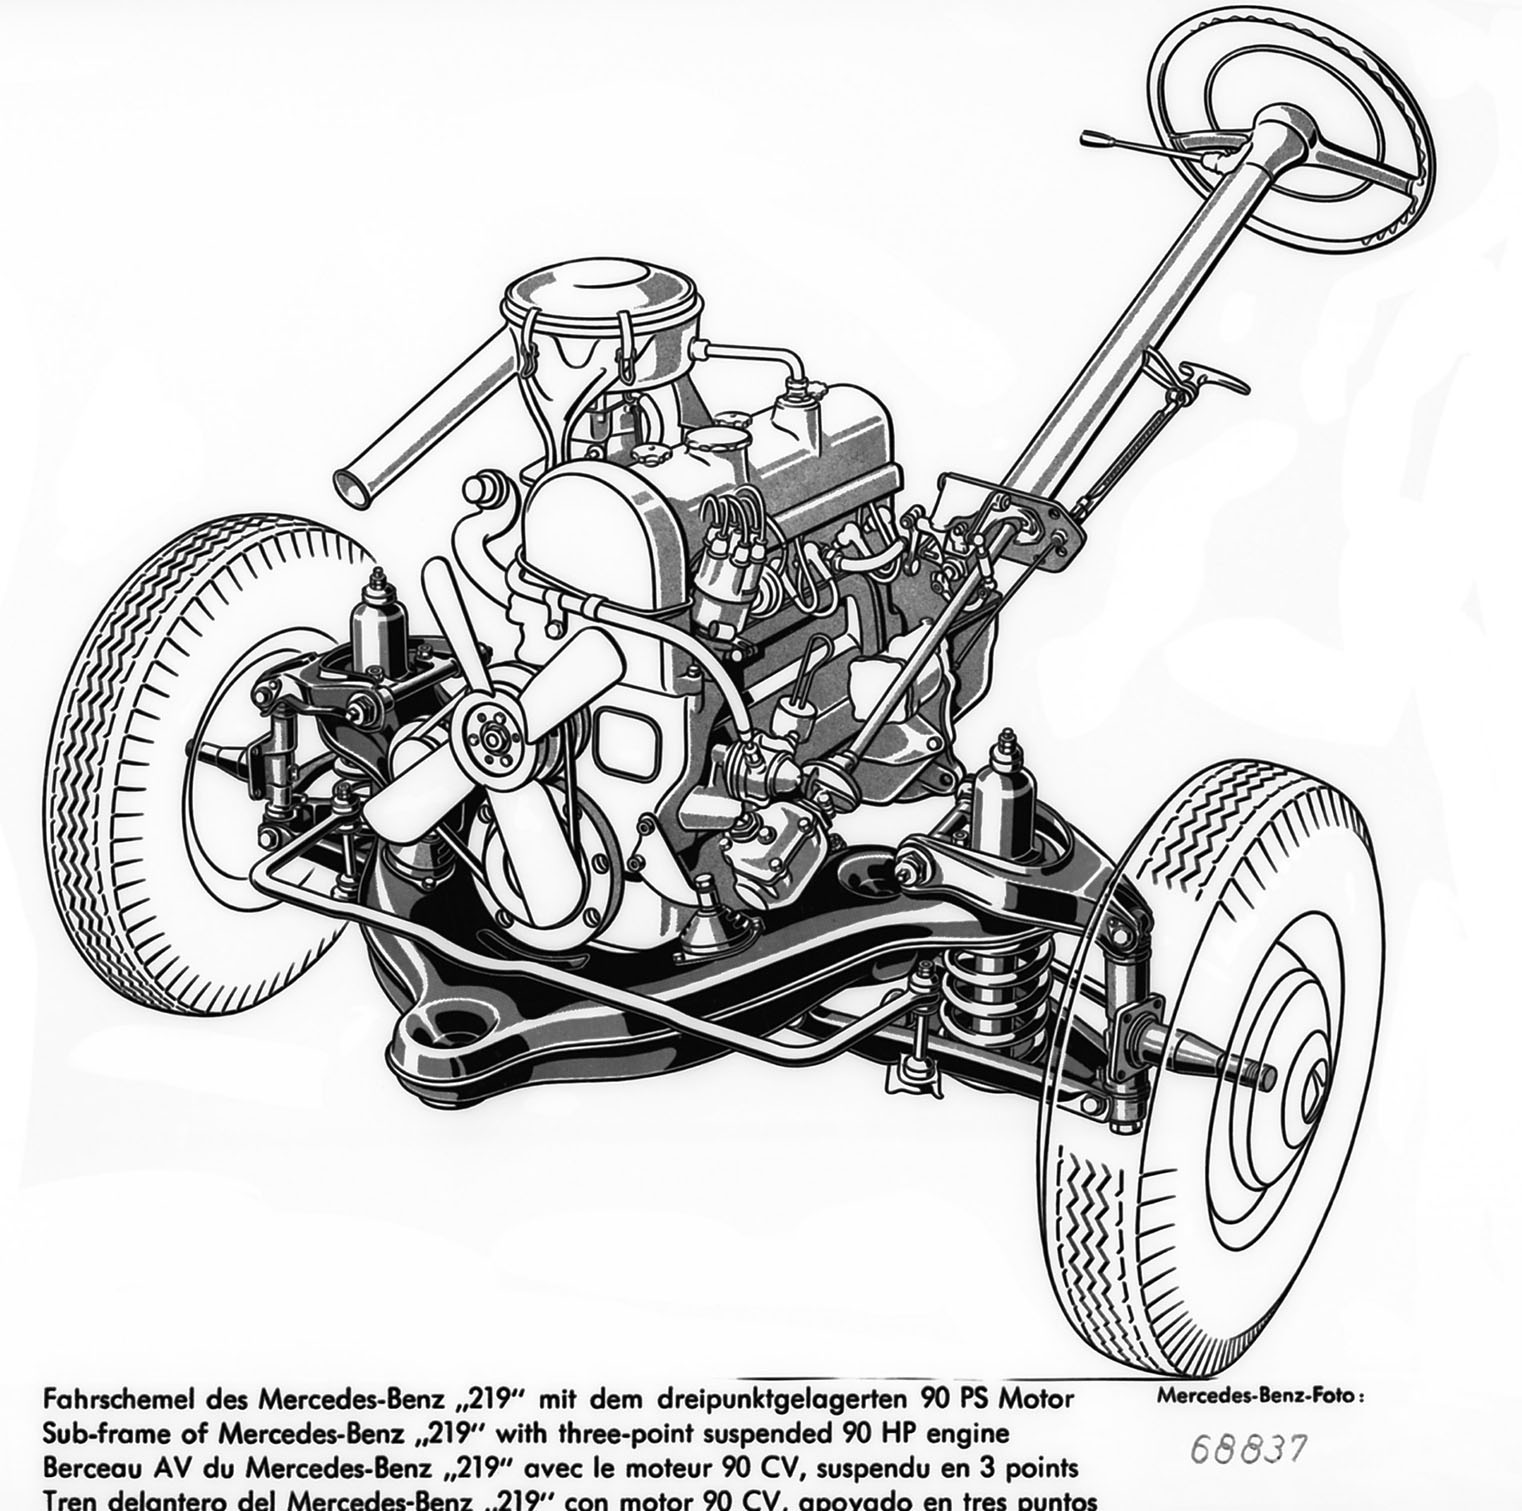 Sub-frame of Mercedes-Benz 219 with 90HP engine M 180 II, © Daimler AG